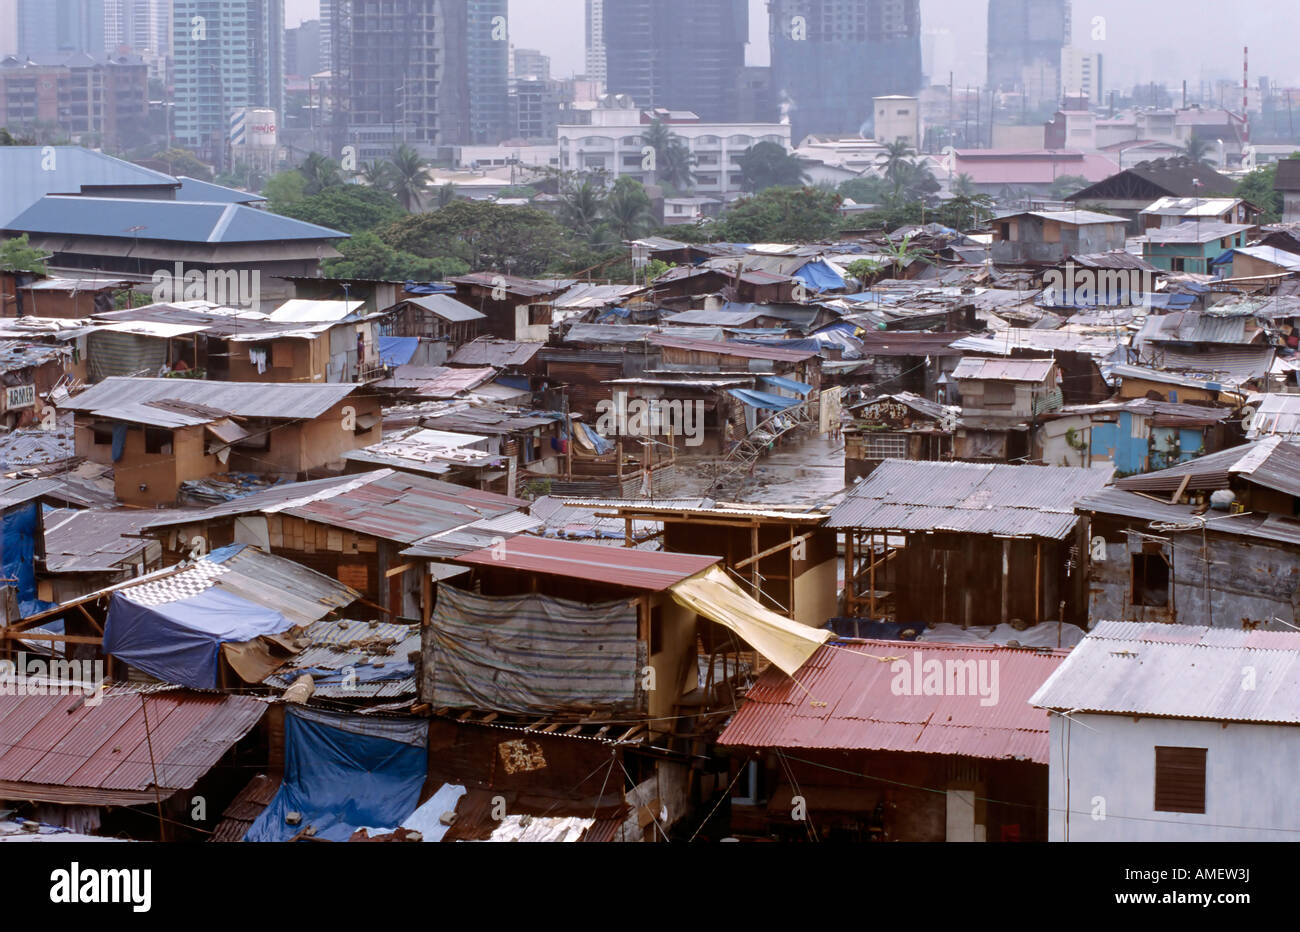 Squatter Camp Stock Photos & Squatter Camp Stock Images ...